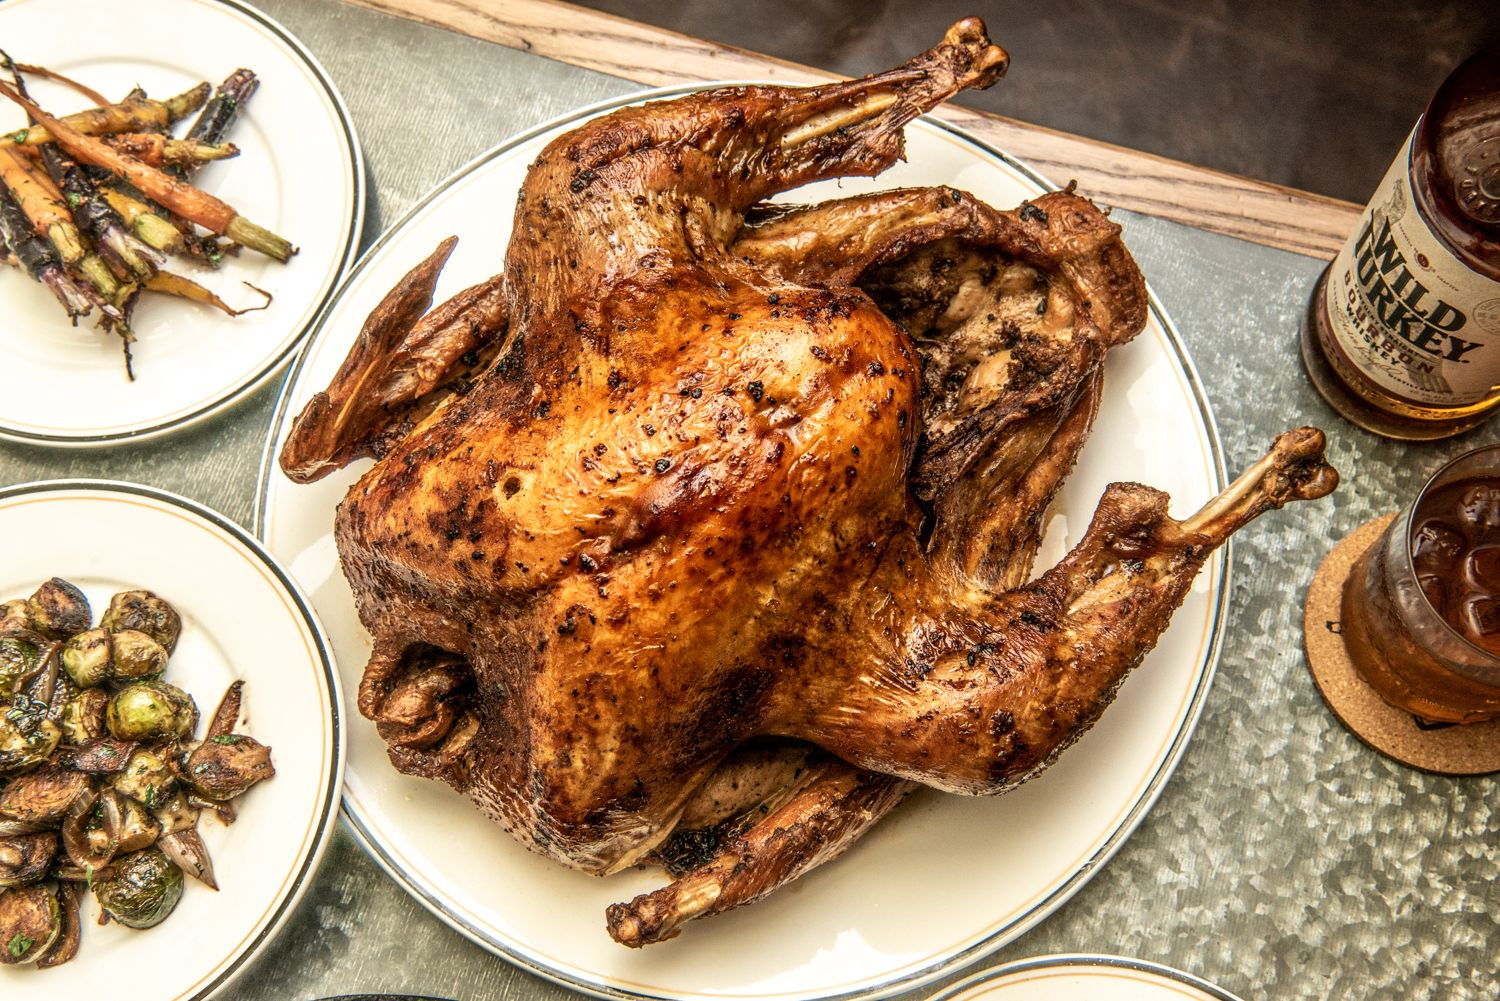 Thanksgiving 2019: Dining Out And Delivery Options In Hong Kong